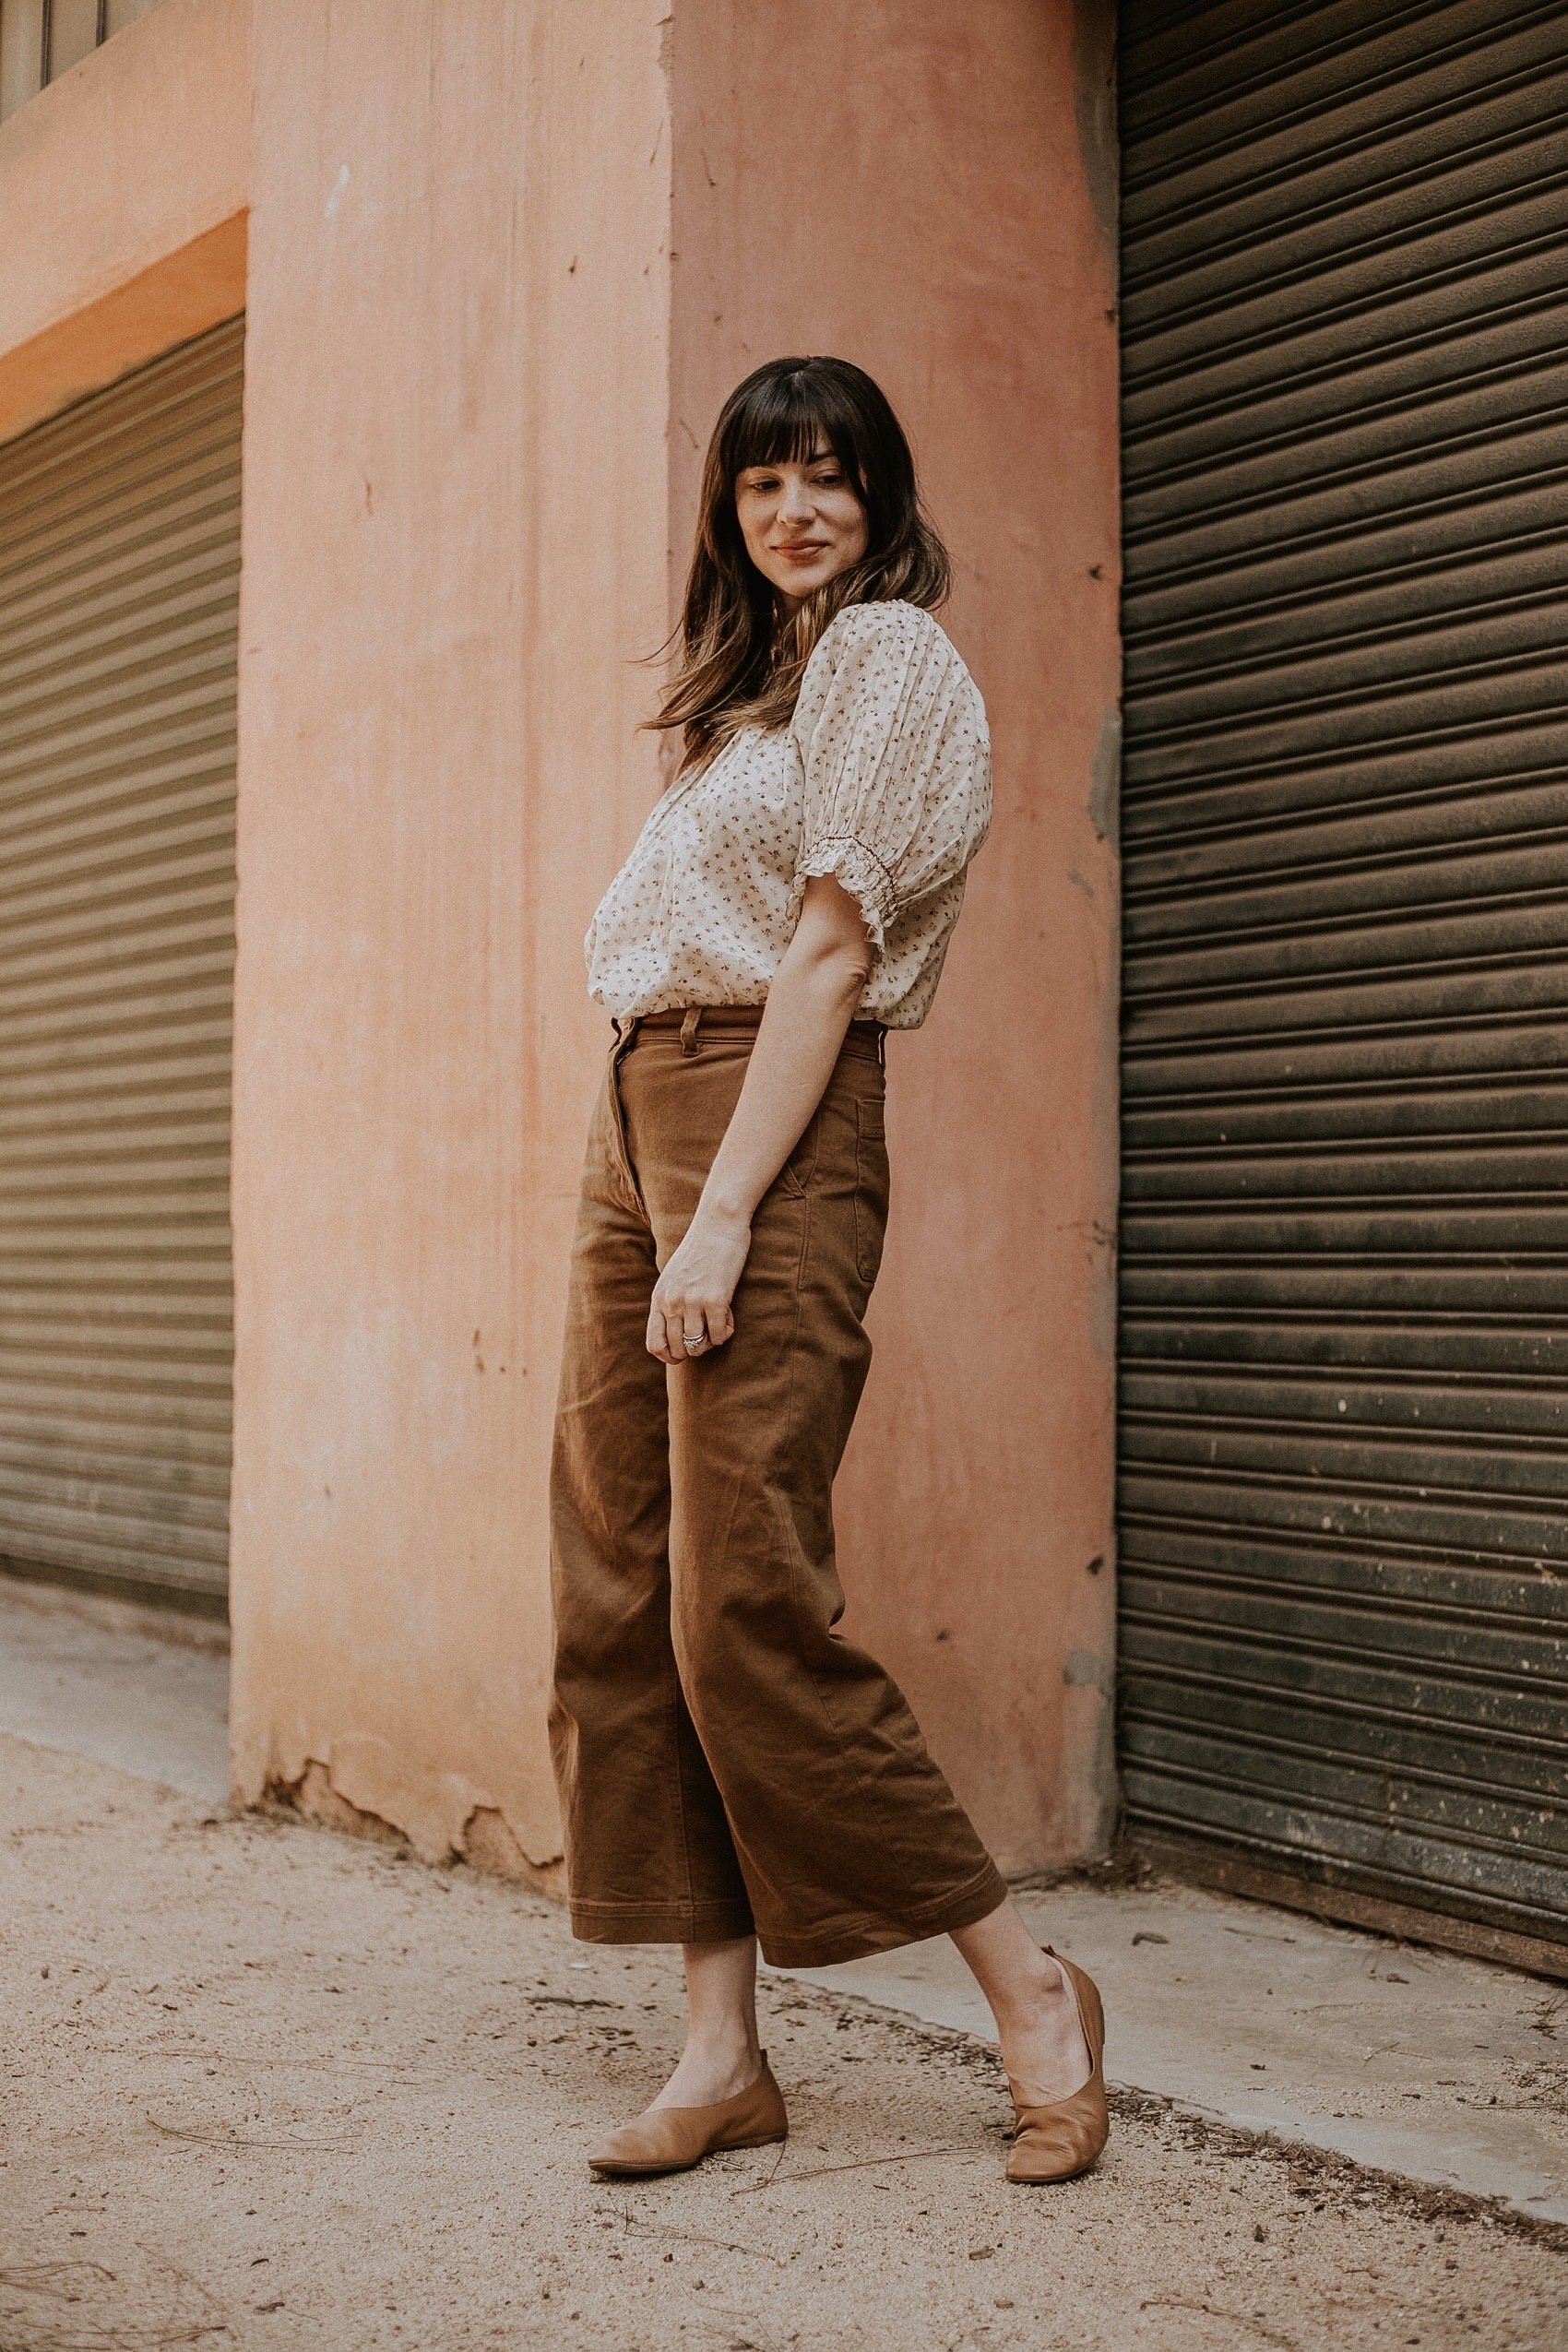 Doen floral top with Everlane Wide Leg Pants and Day Glove Shoes, Ethical Outfit of the Day